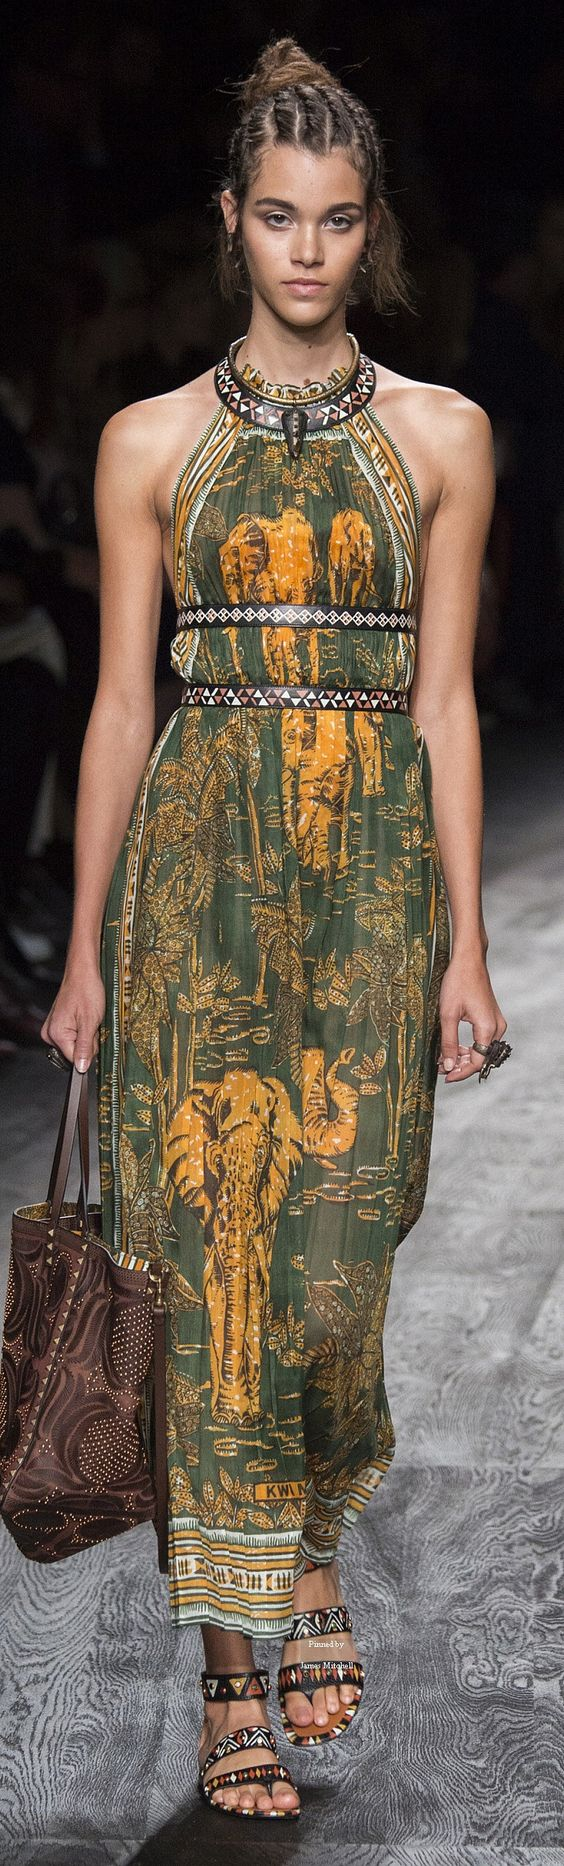 #Farbbberatung #Stilberatung #Farbenreich mit www.farben-reich.com Valentino Collection Spring 2016 Ready-to-Wear: